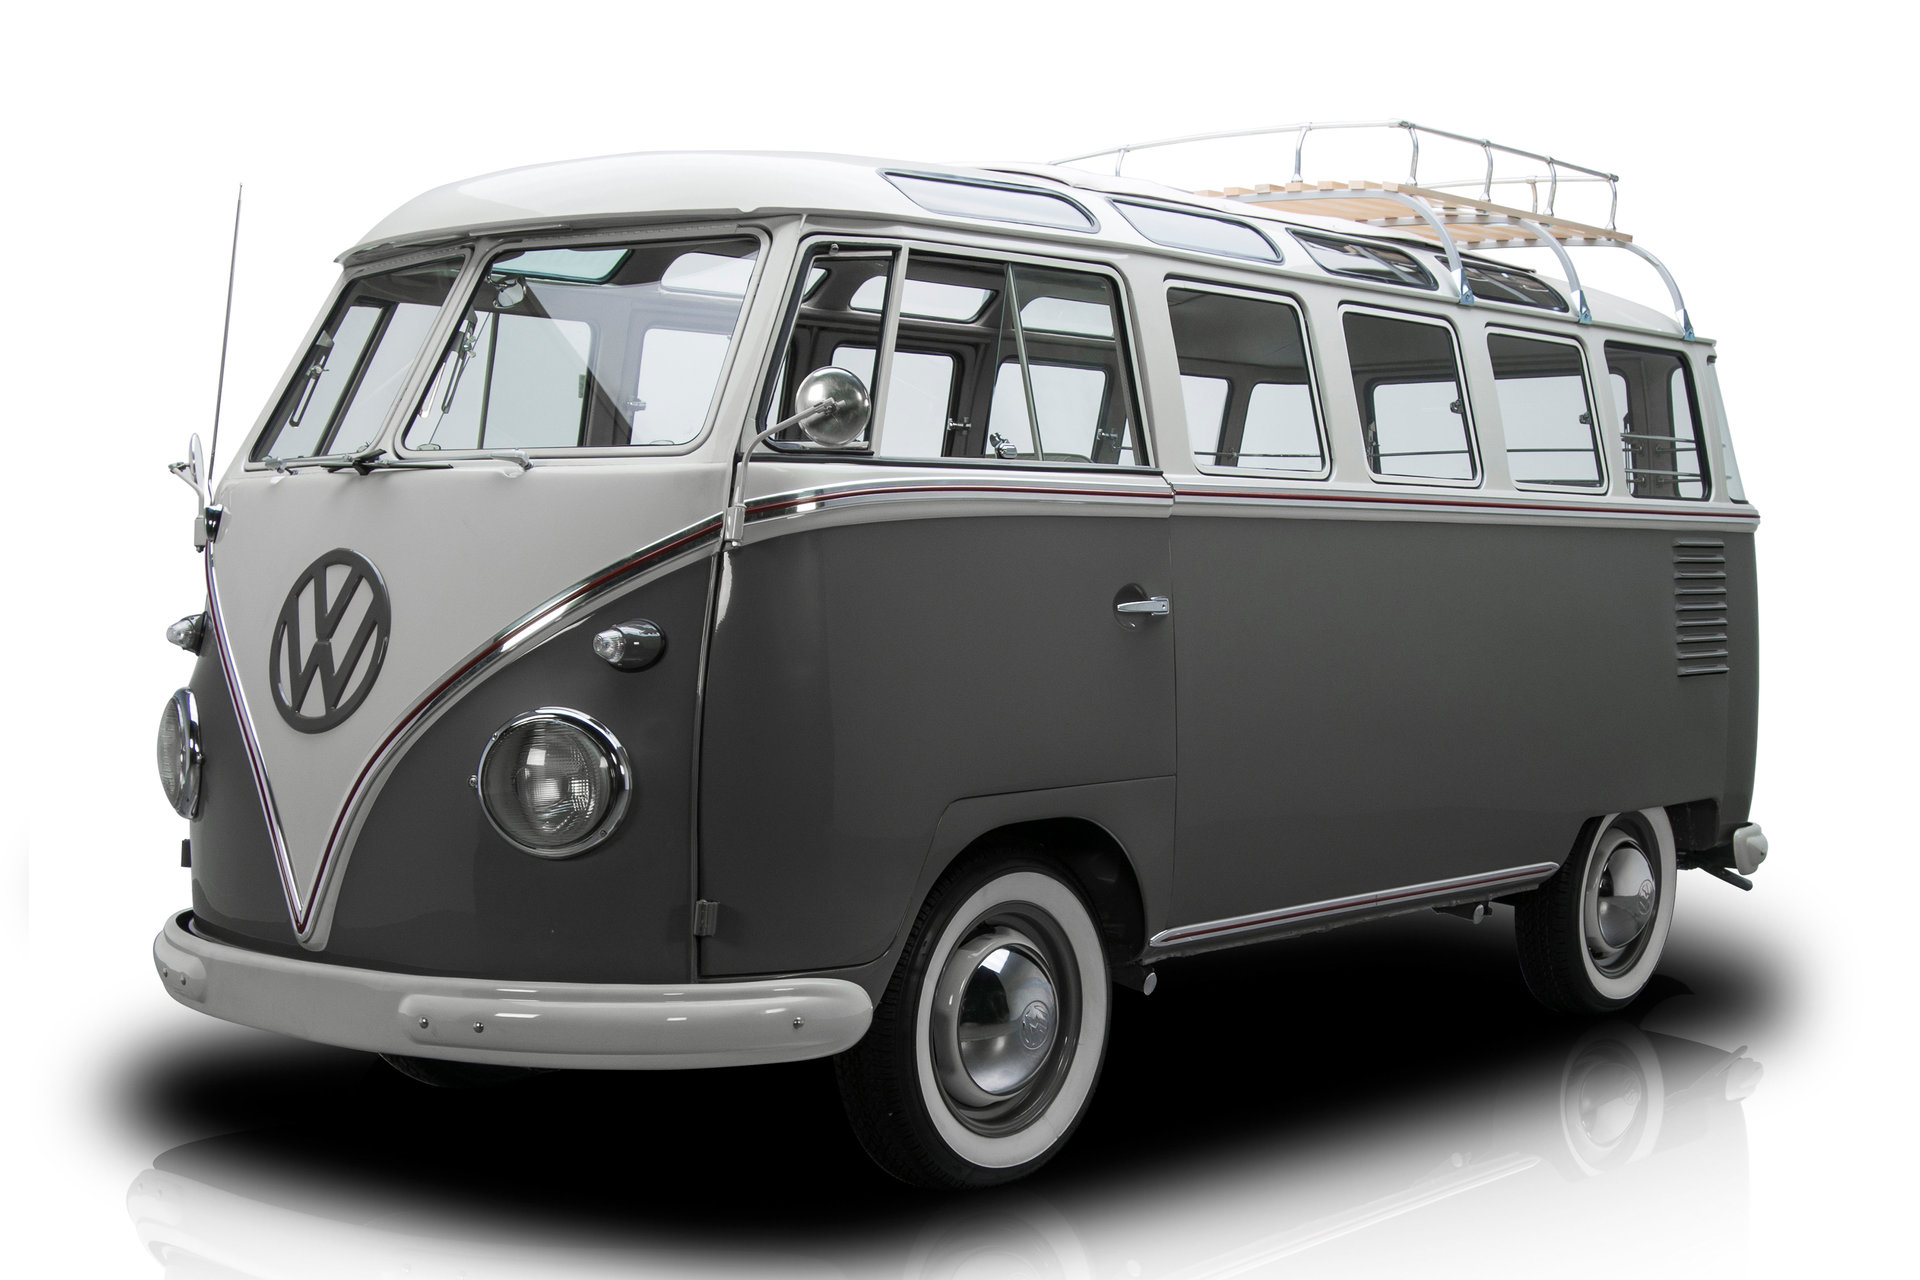 135813 1960 Volkswagen Kombi | RK Motors Classic and Performance Cars for Sale